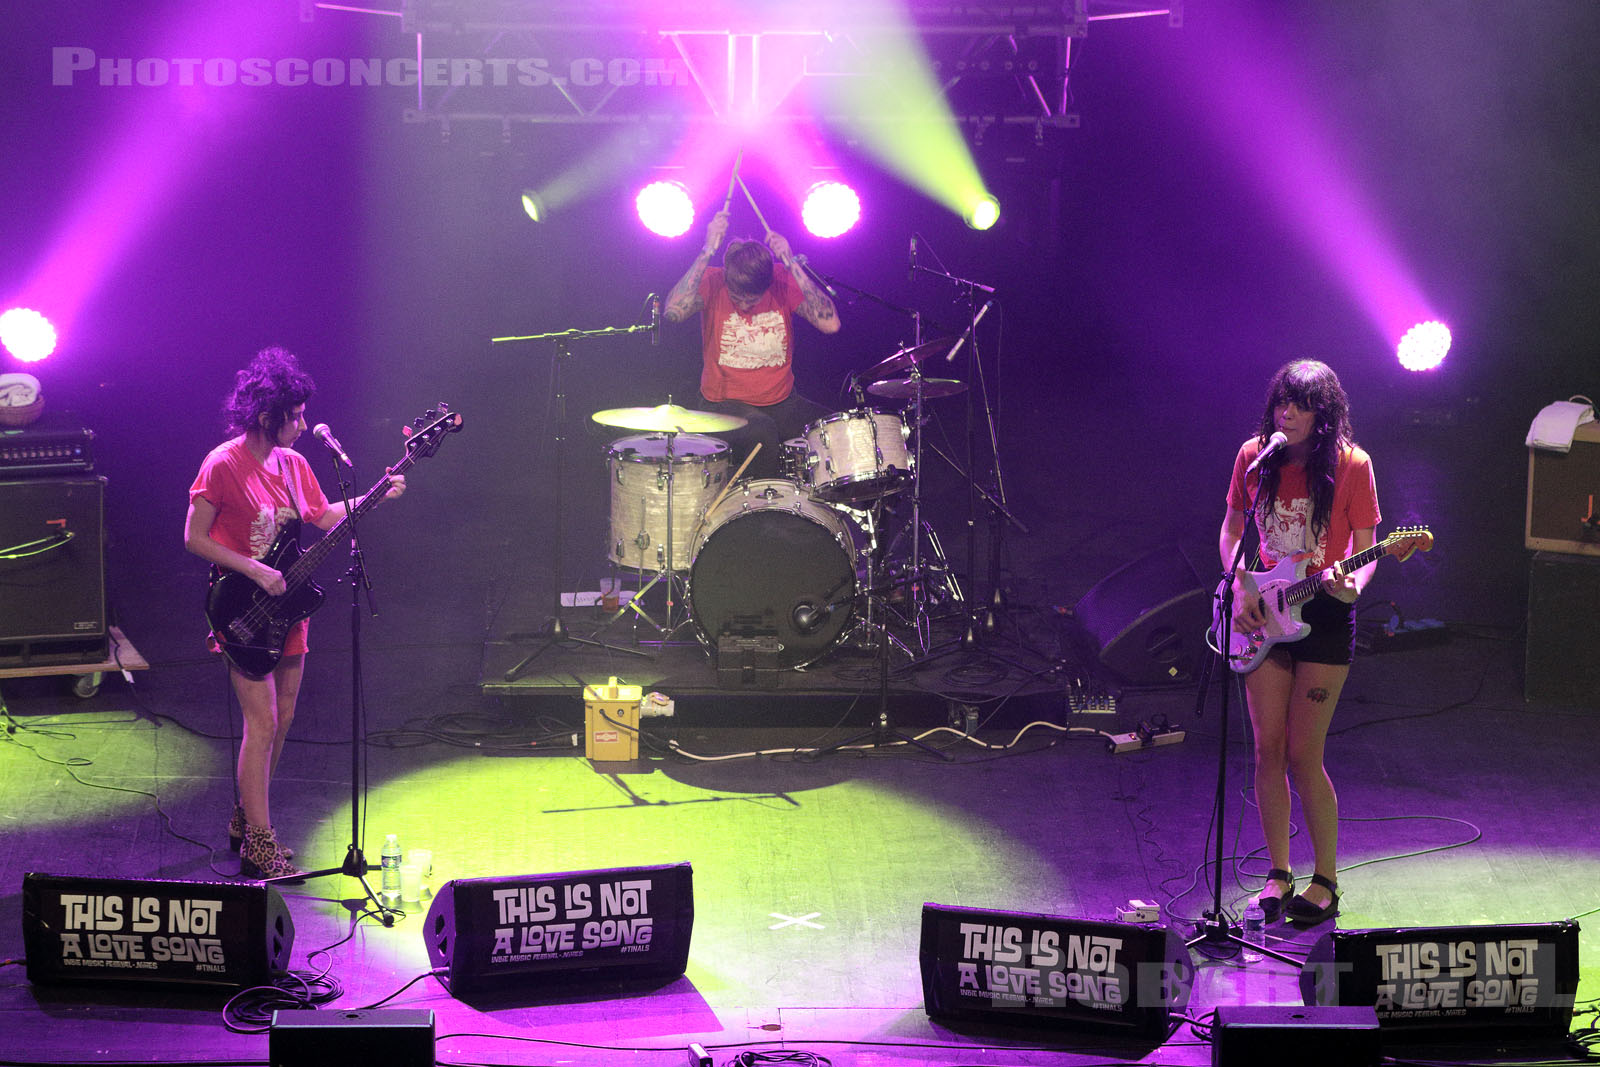 THE COATHANGERS - 2017-06-09 - NIMES - Paloma - Grande Salle